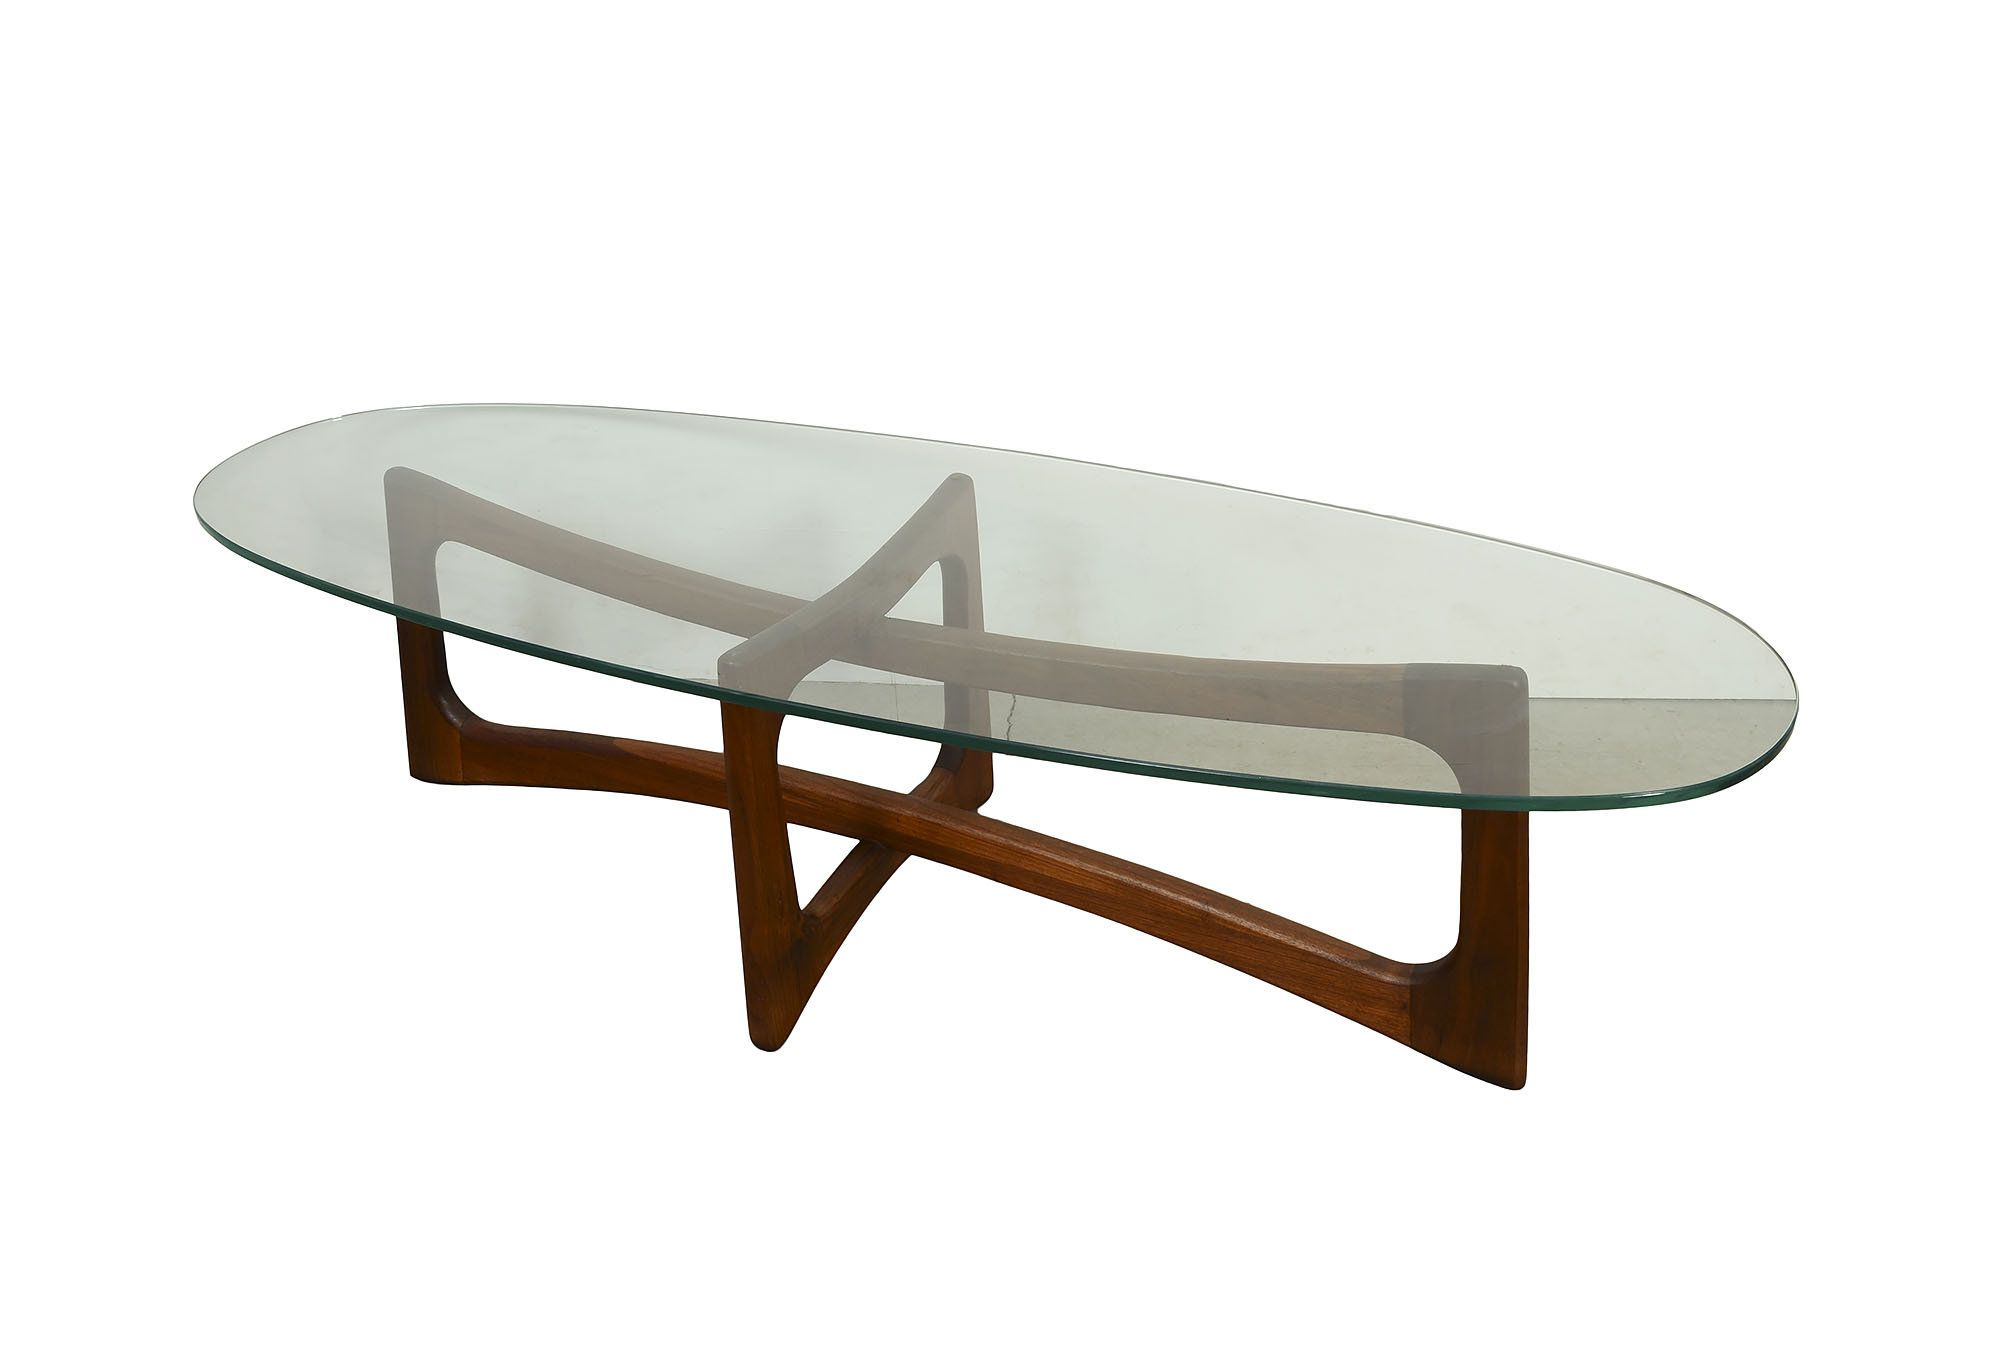 Adrian Pearsall Glass Top Cocktail Table Craft Associates Glass Top Coffee Table By Hearthsidehome On Etsy Glass Top Side Table Coffee Table Pearsall [ 1359 x 2000 Pixel ]